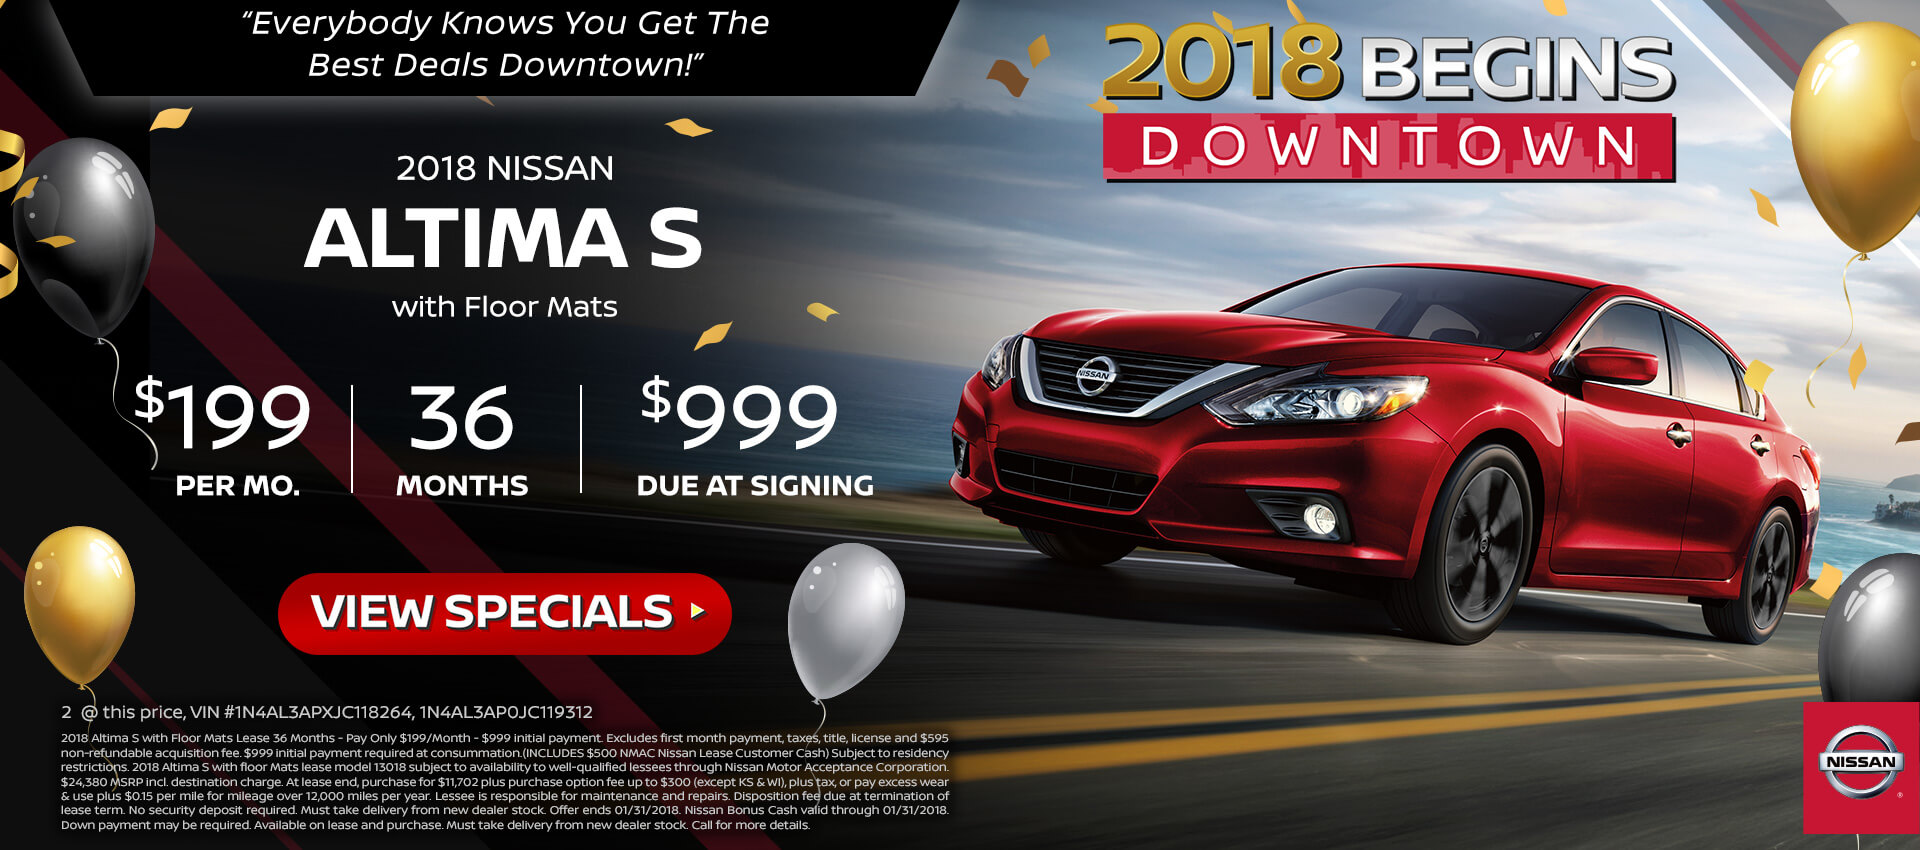 2018 Nissan Altima 2.5S Lease